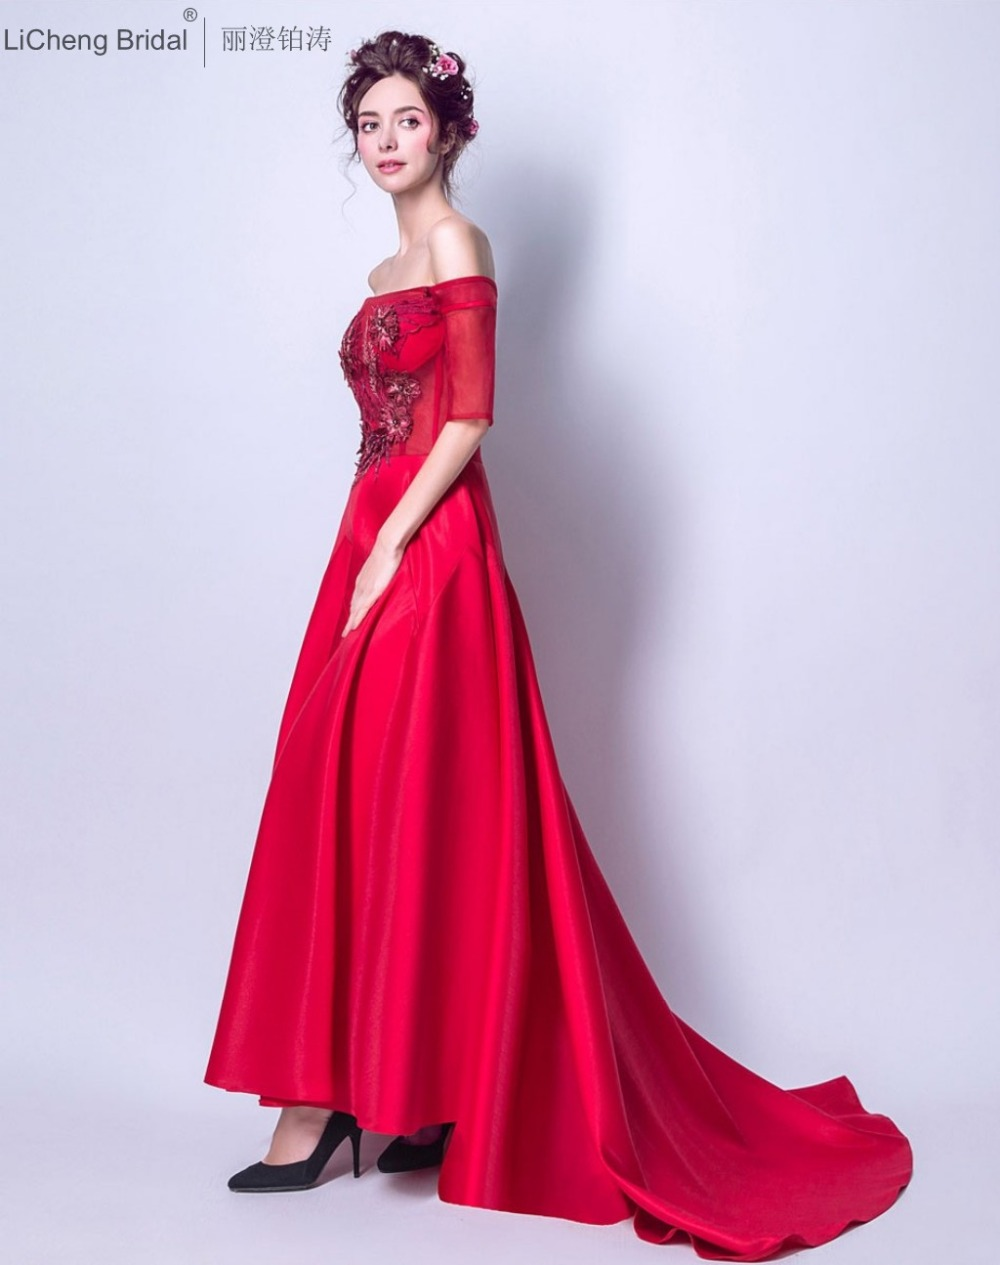 Aliexpress buy fast shipping red bridesmaid dress long aliexpress buy fast shipping red bridesmaid dress long beaded appliques women dress off shuolder party dresses 2017 robe de soiree from reliable red ombrellifo Image collections